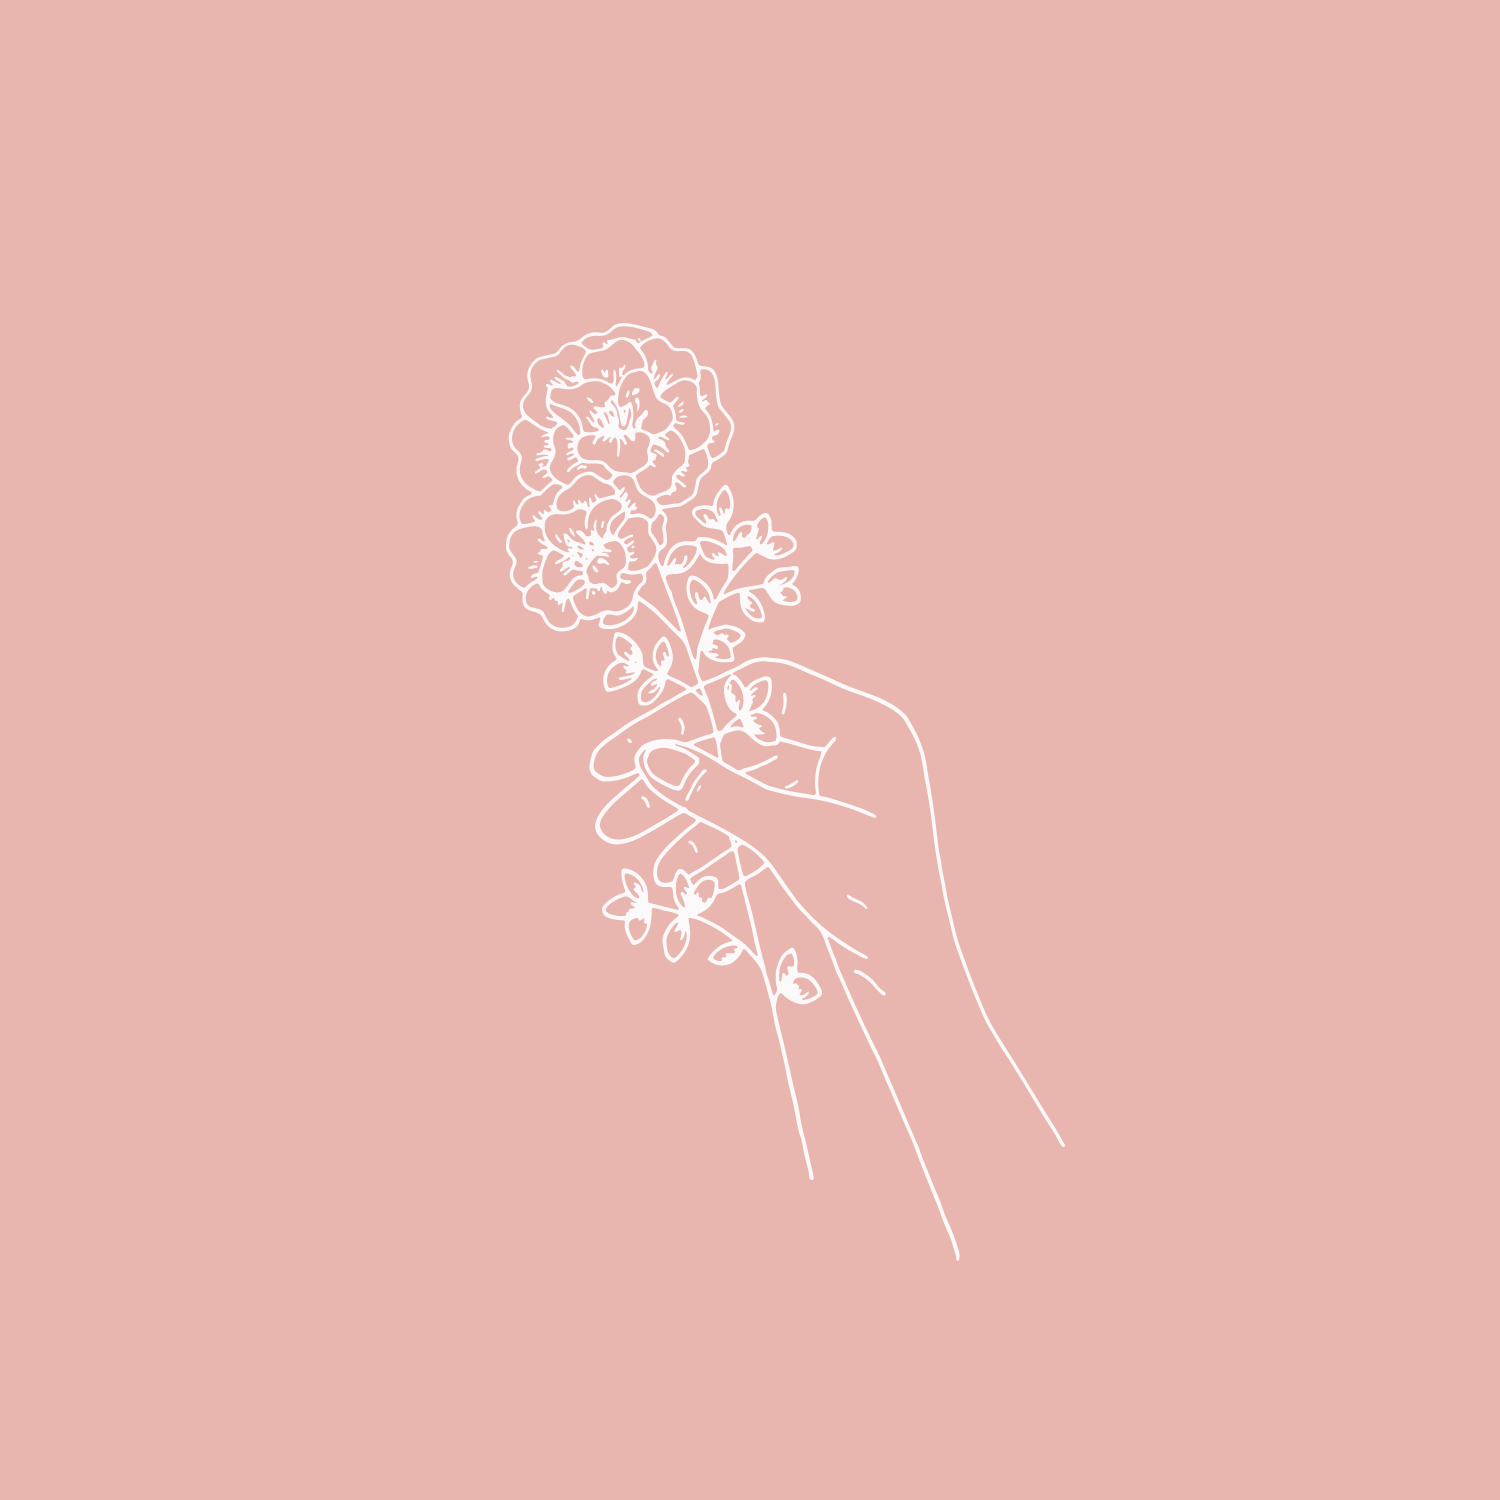 Floral hand illustration #the100dayproject by Bea & Bloom Creative Design Studio